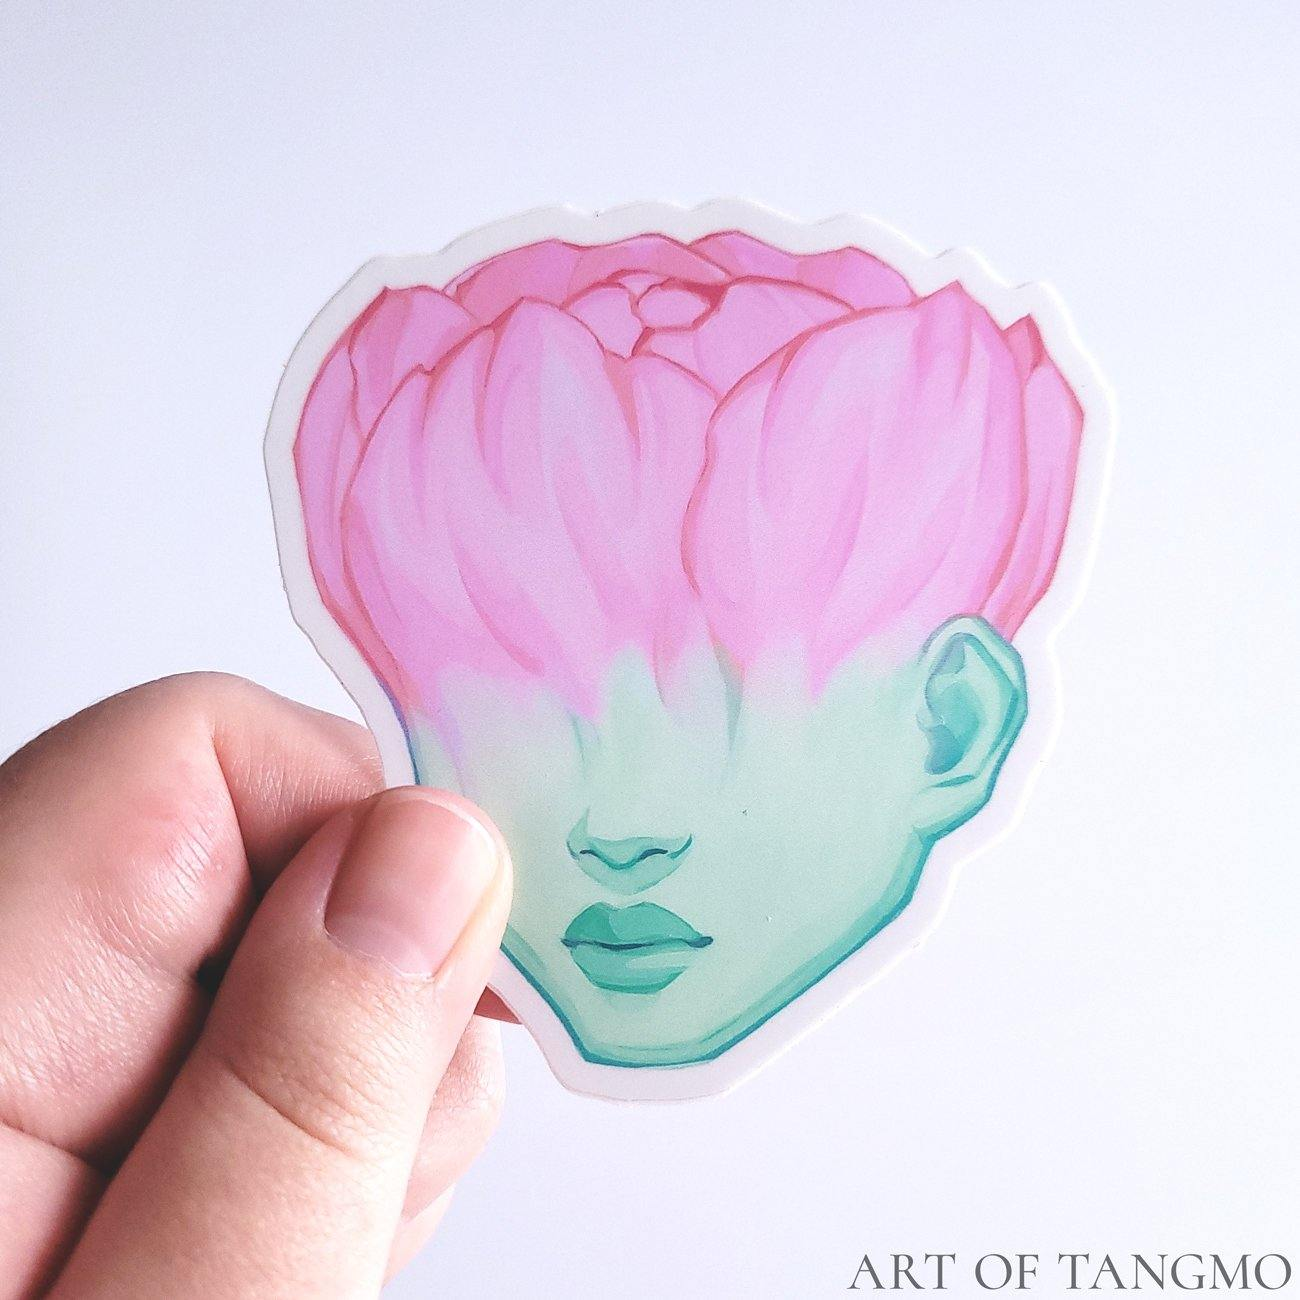 Flower Bud Vinyl Sticker - Art of Tangmo